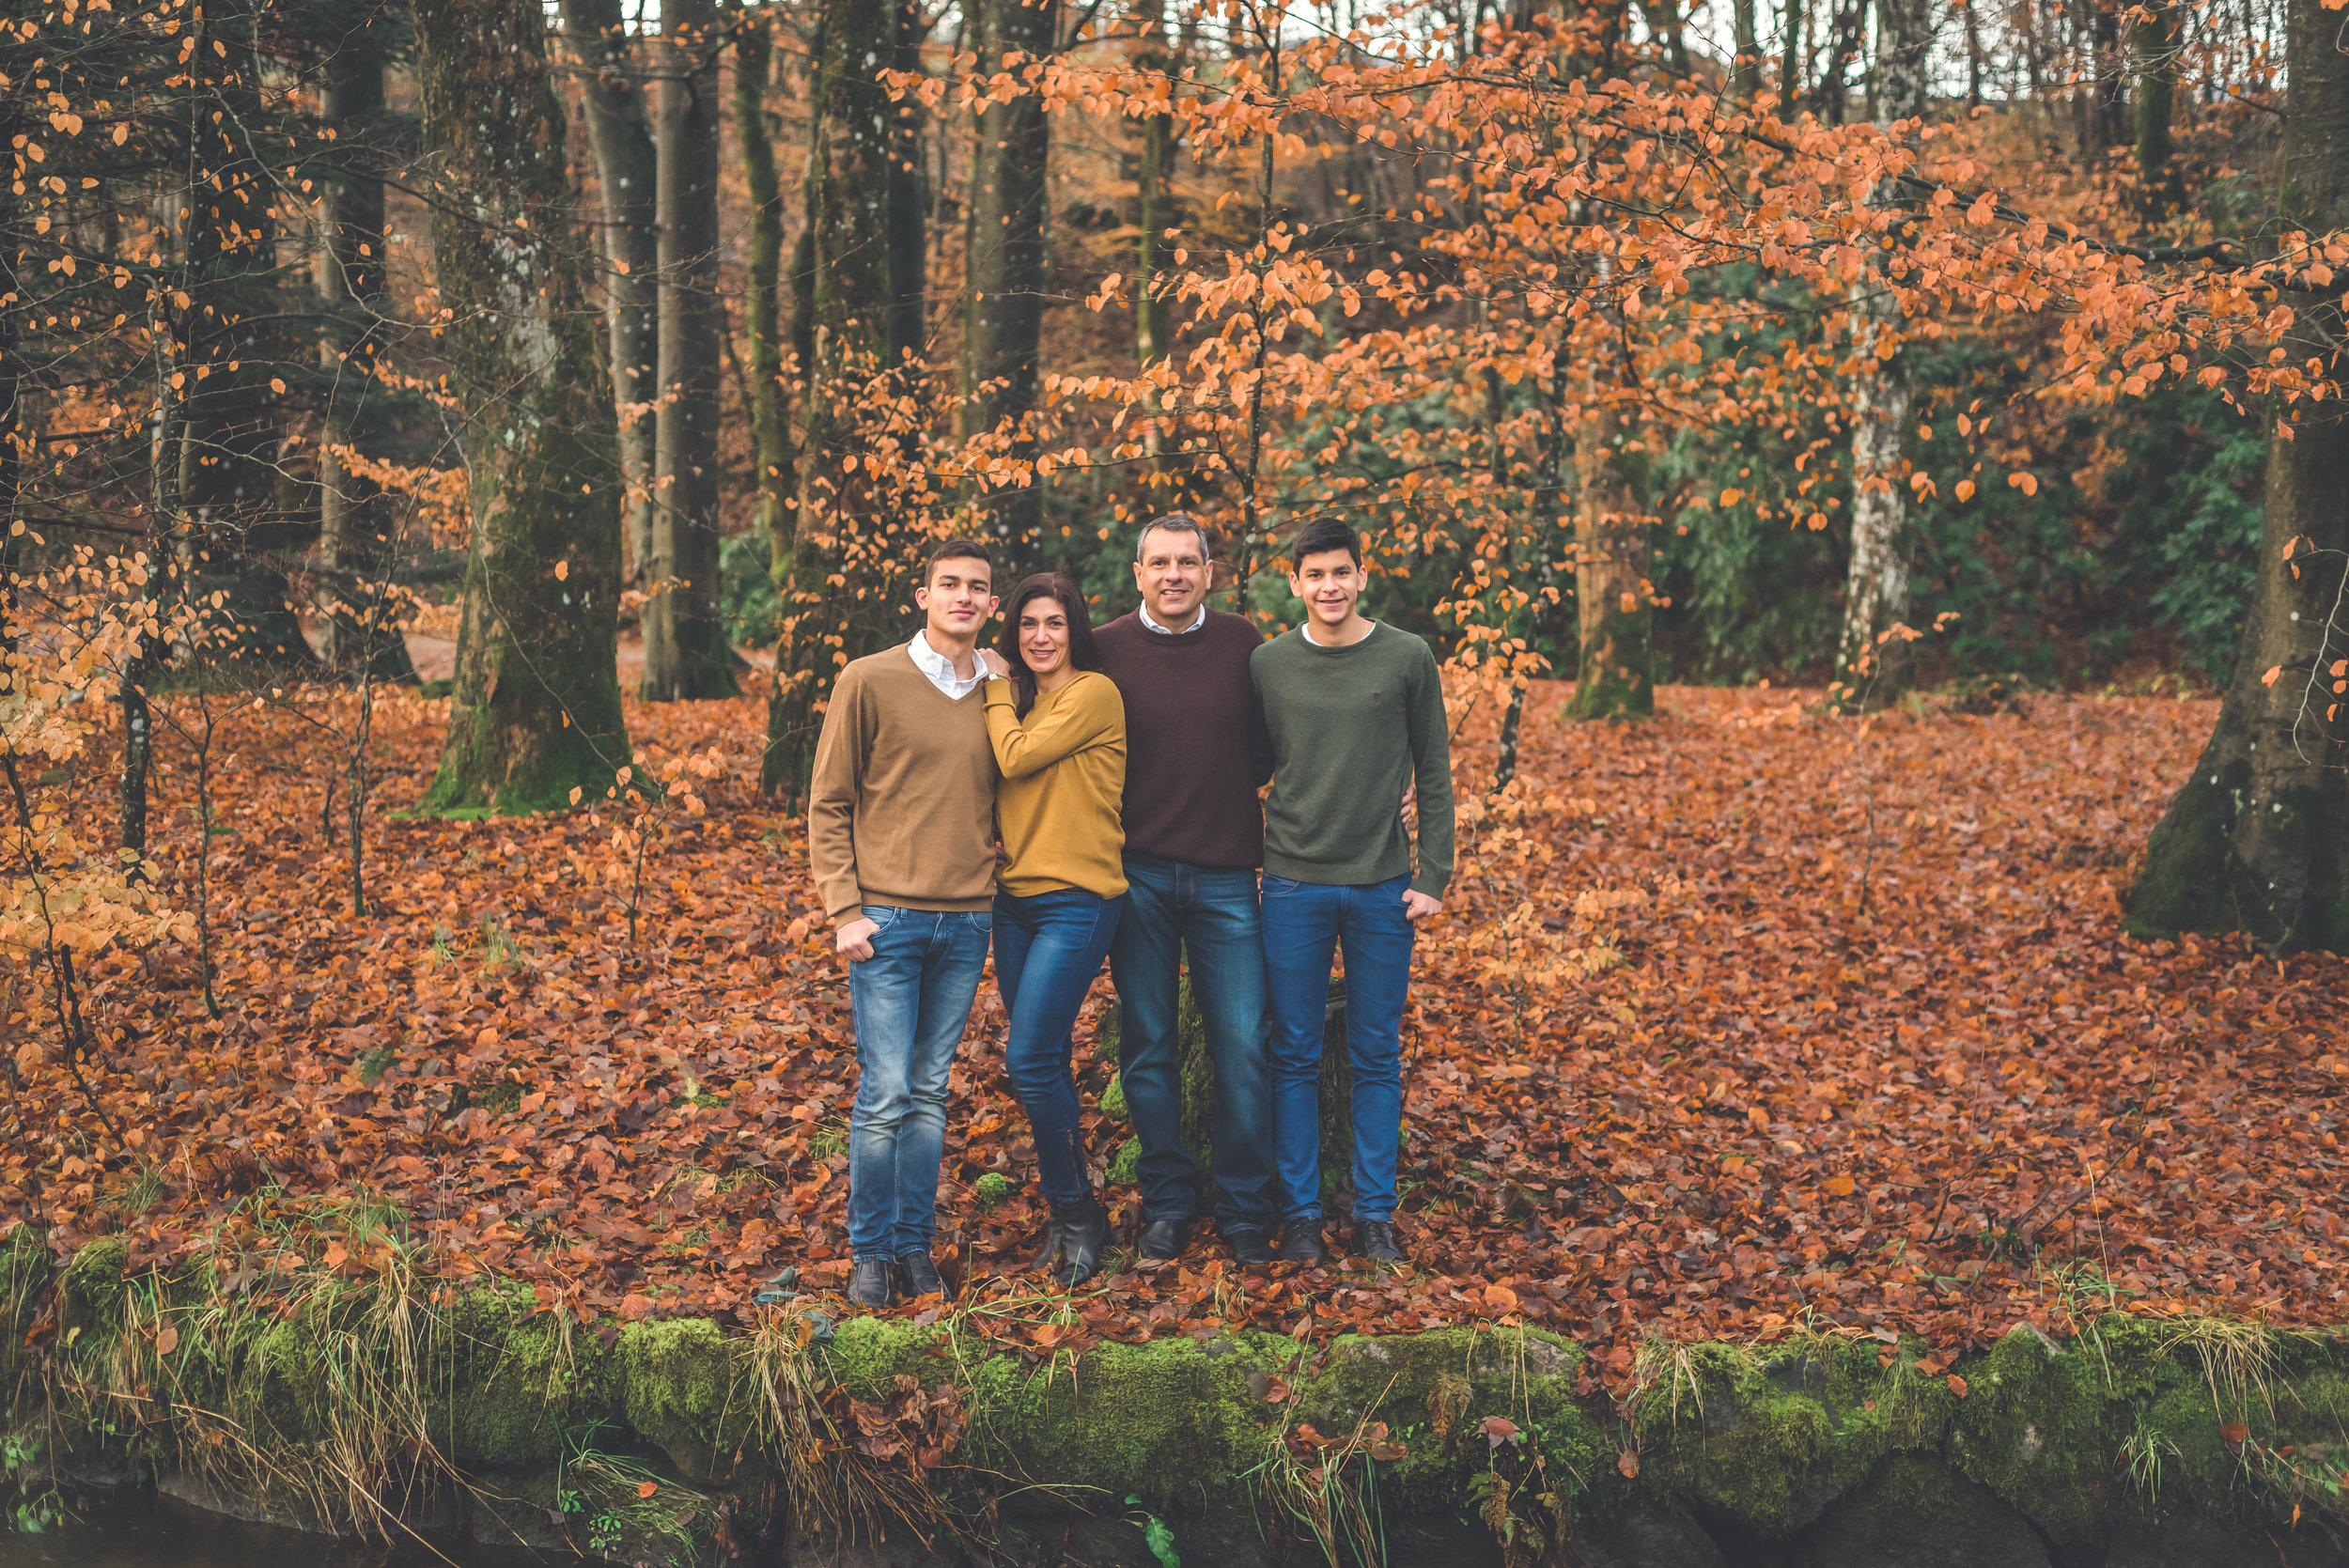 Family in autumn leaves photography outdoor Stavanger Familie fotografering